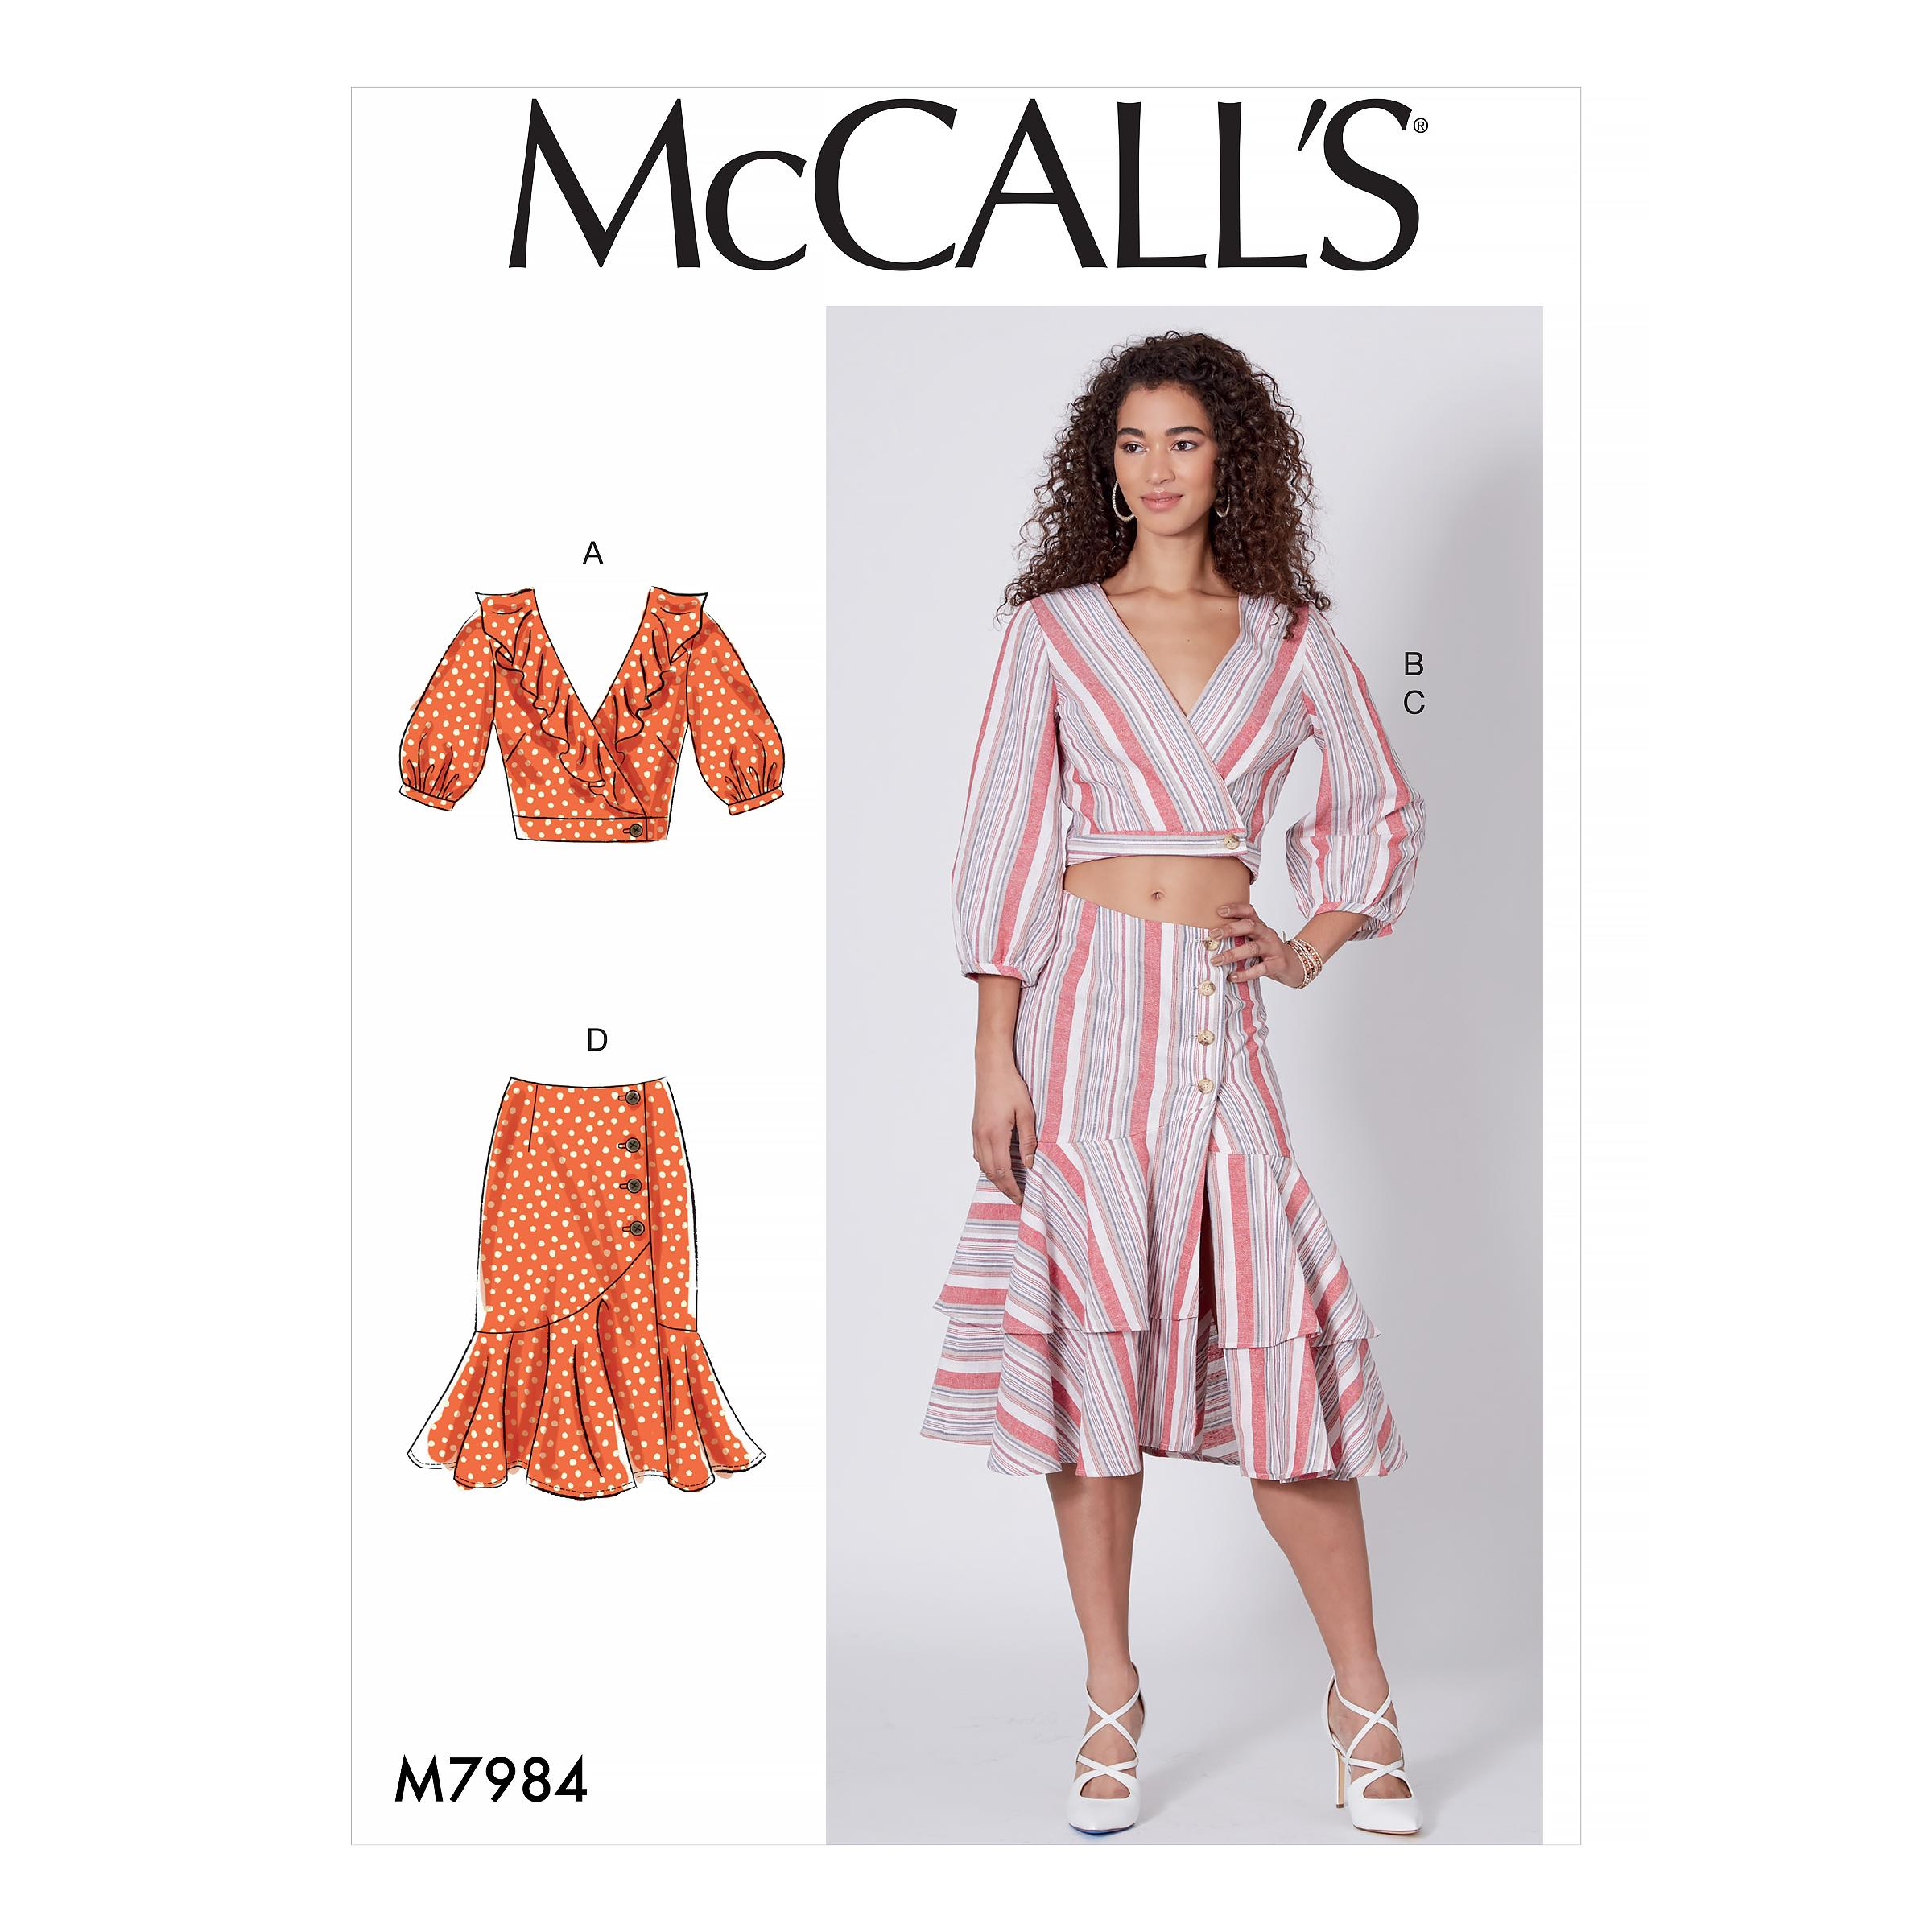 McCalls M7984 Misses Tops, Misses Skirts, Misses Coordinates